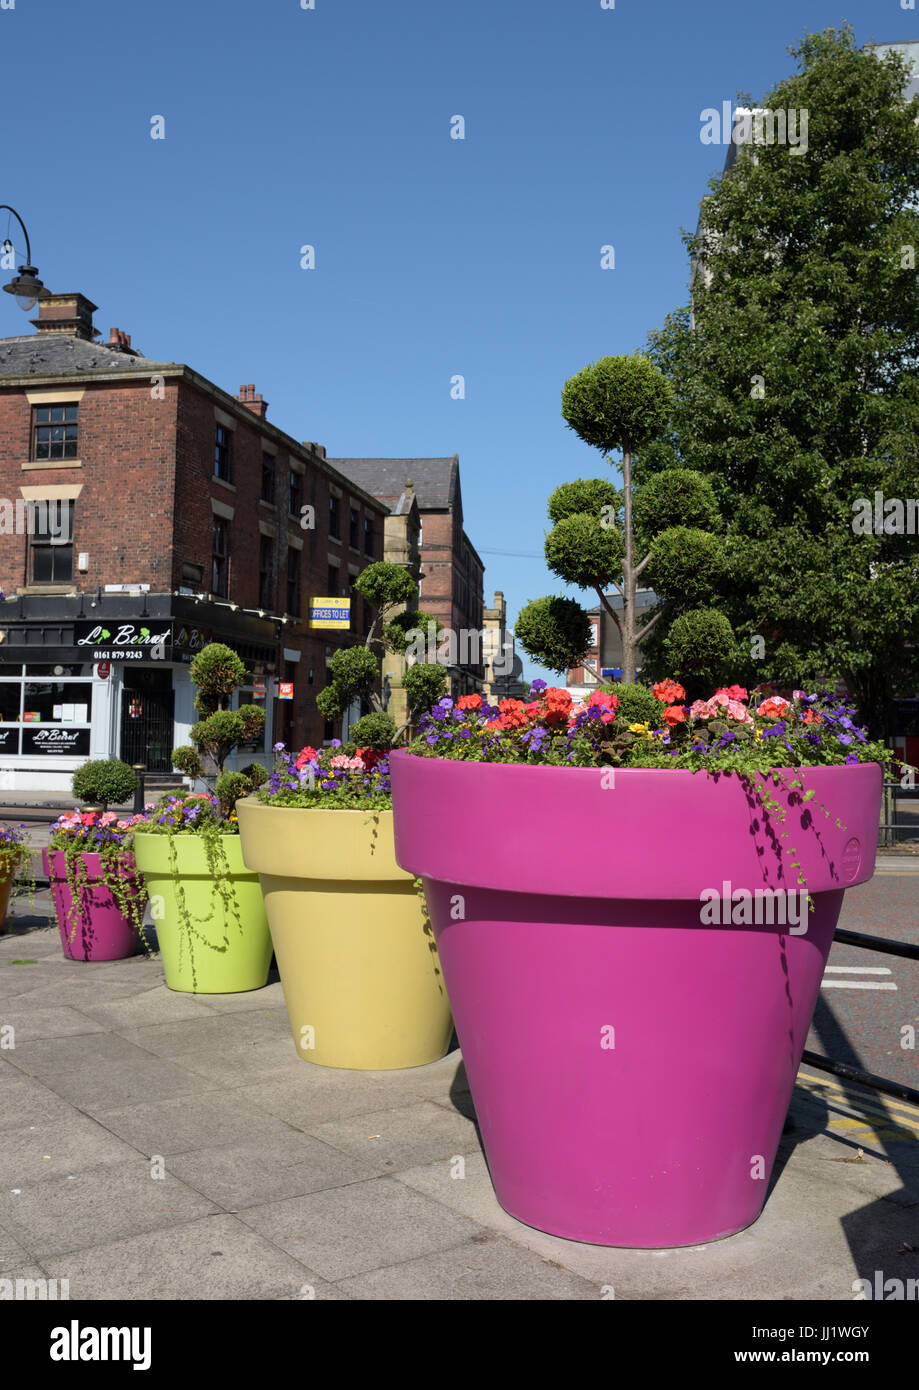 Giant flowerpots with floral displays in bury lancashire stock image